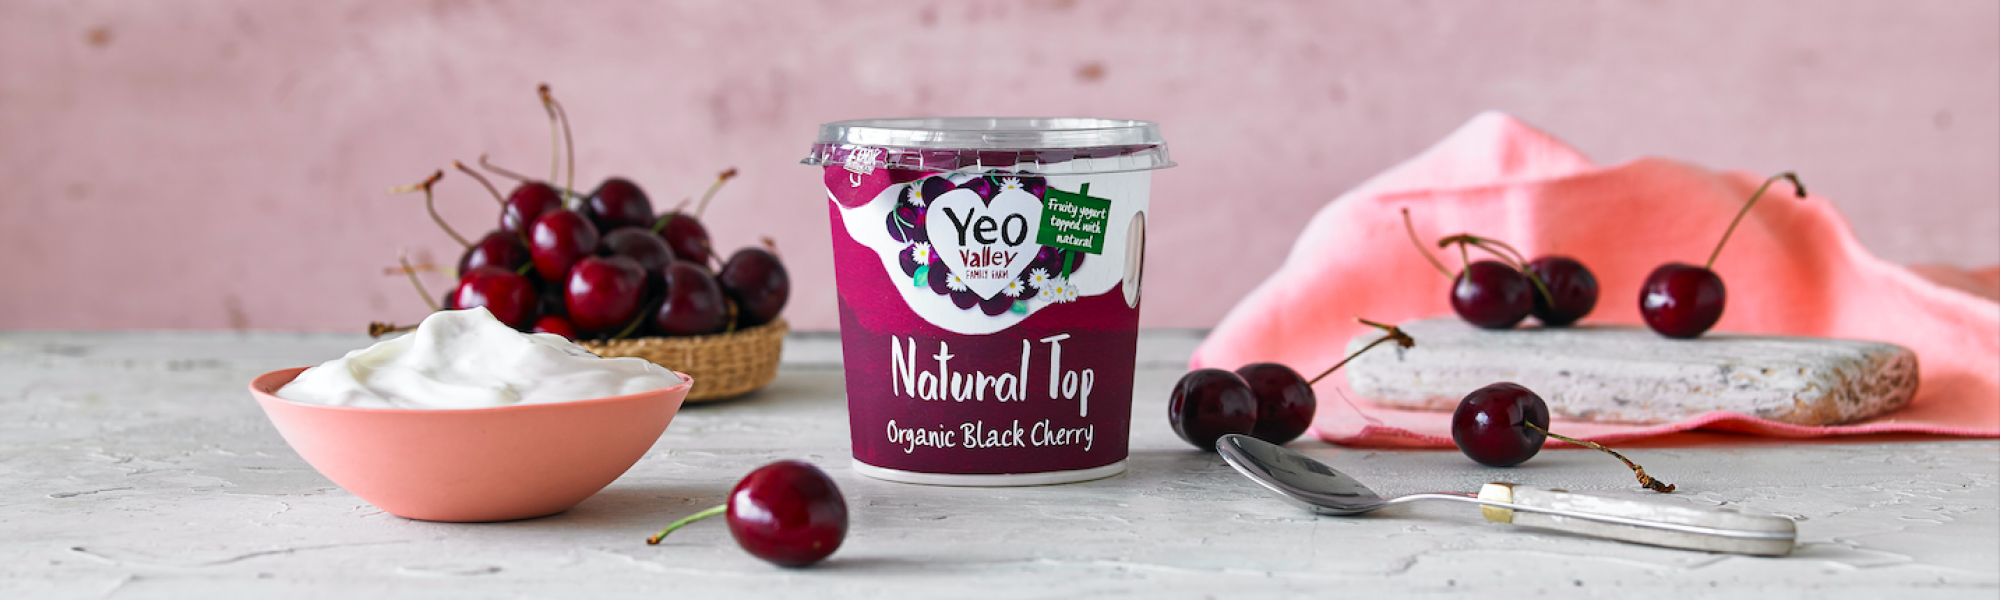 Yeo Valley Organic cherry yogurt greek style natural top